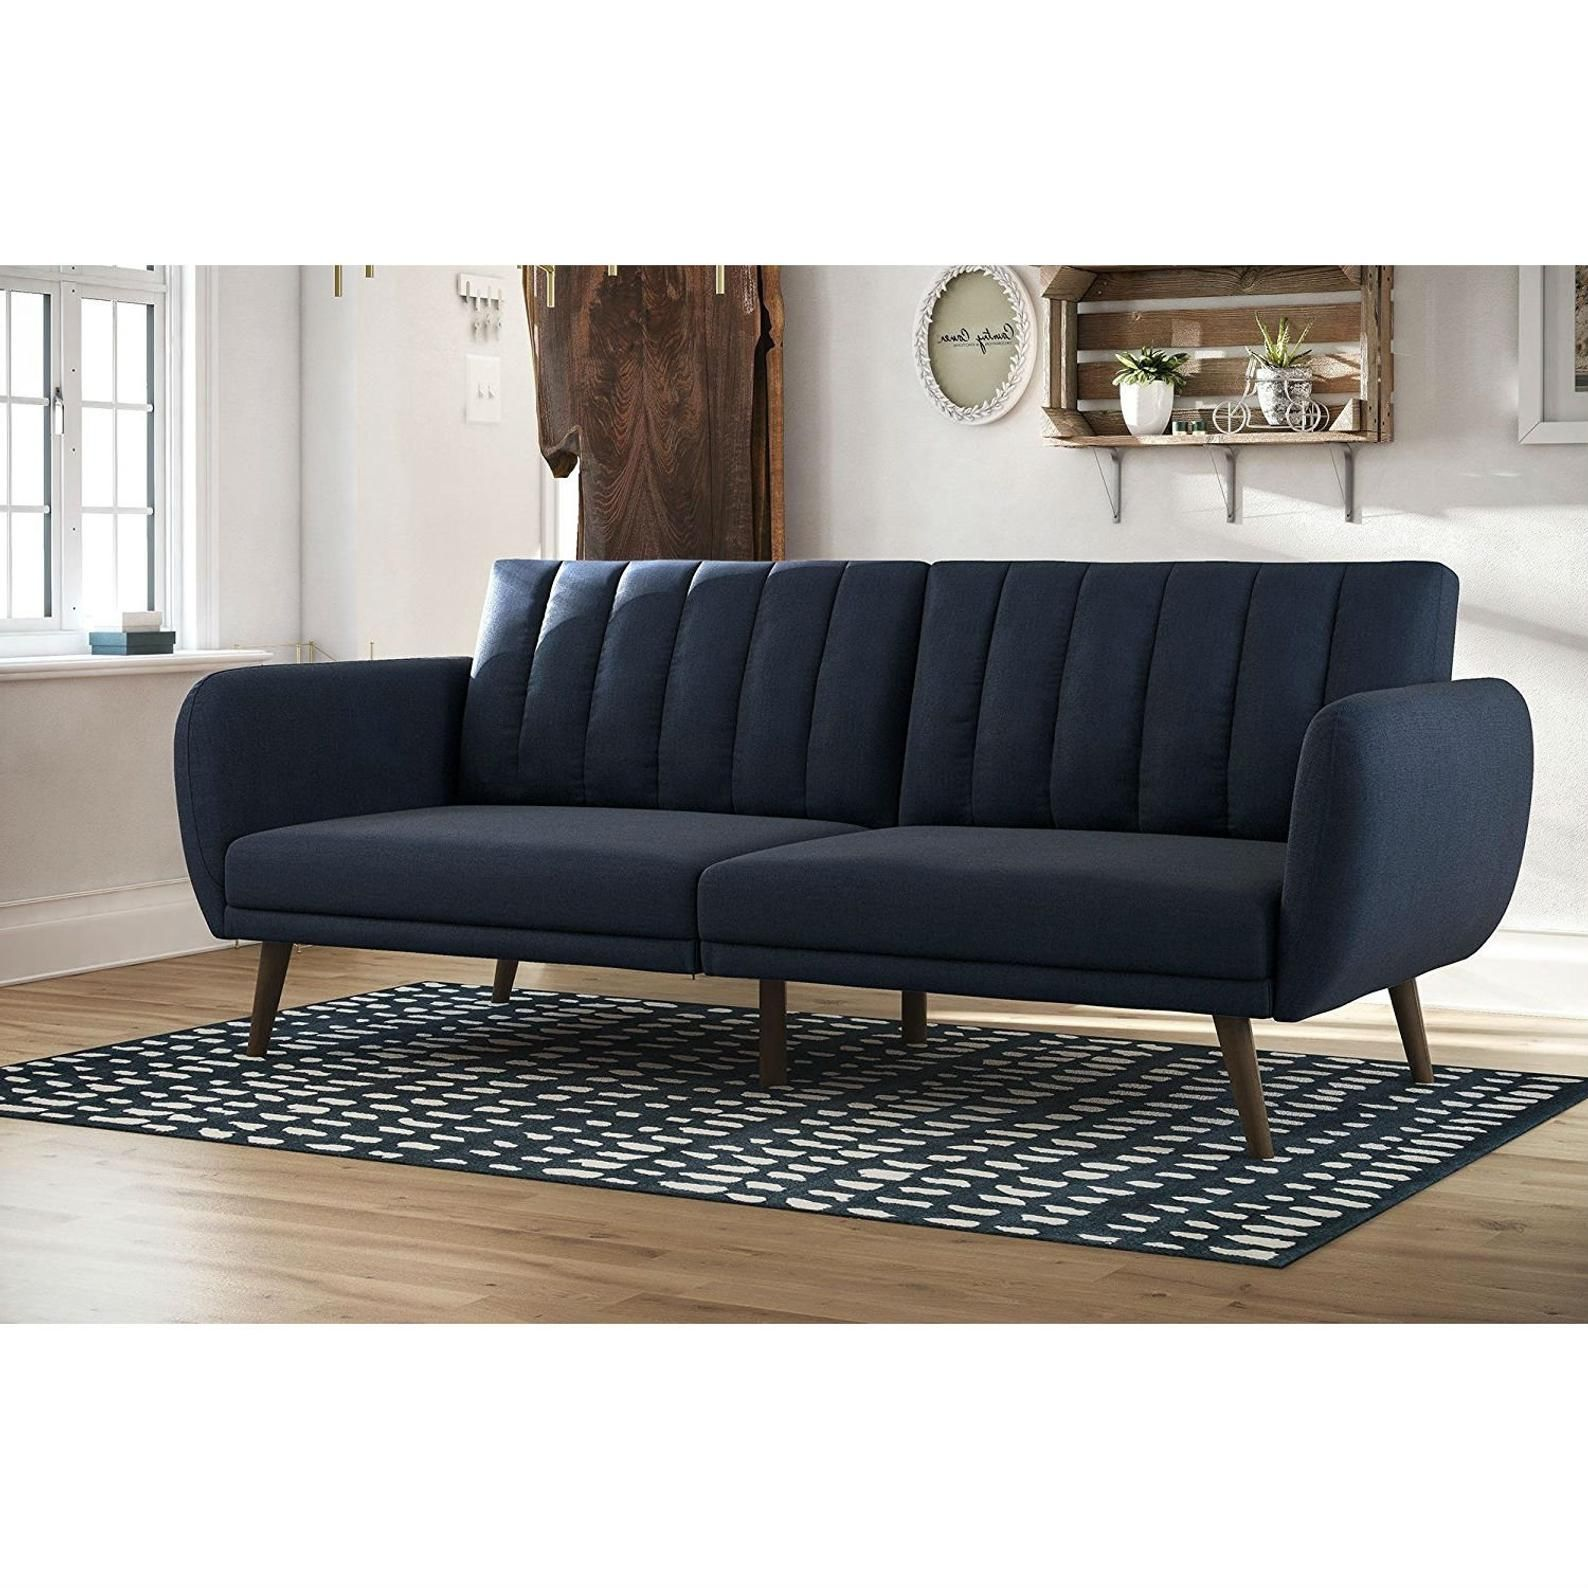 Admirable Modern Navy Blue Linen Upholstered Sofa Bed Futon With Gmtry Best Dining Table And Chair Ideas Images Gmtryco